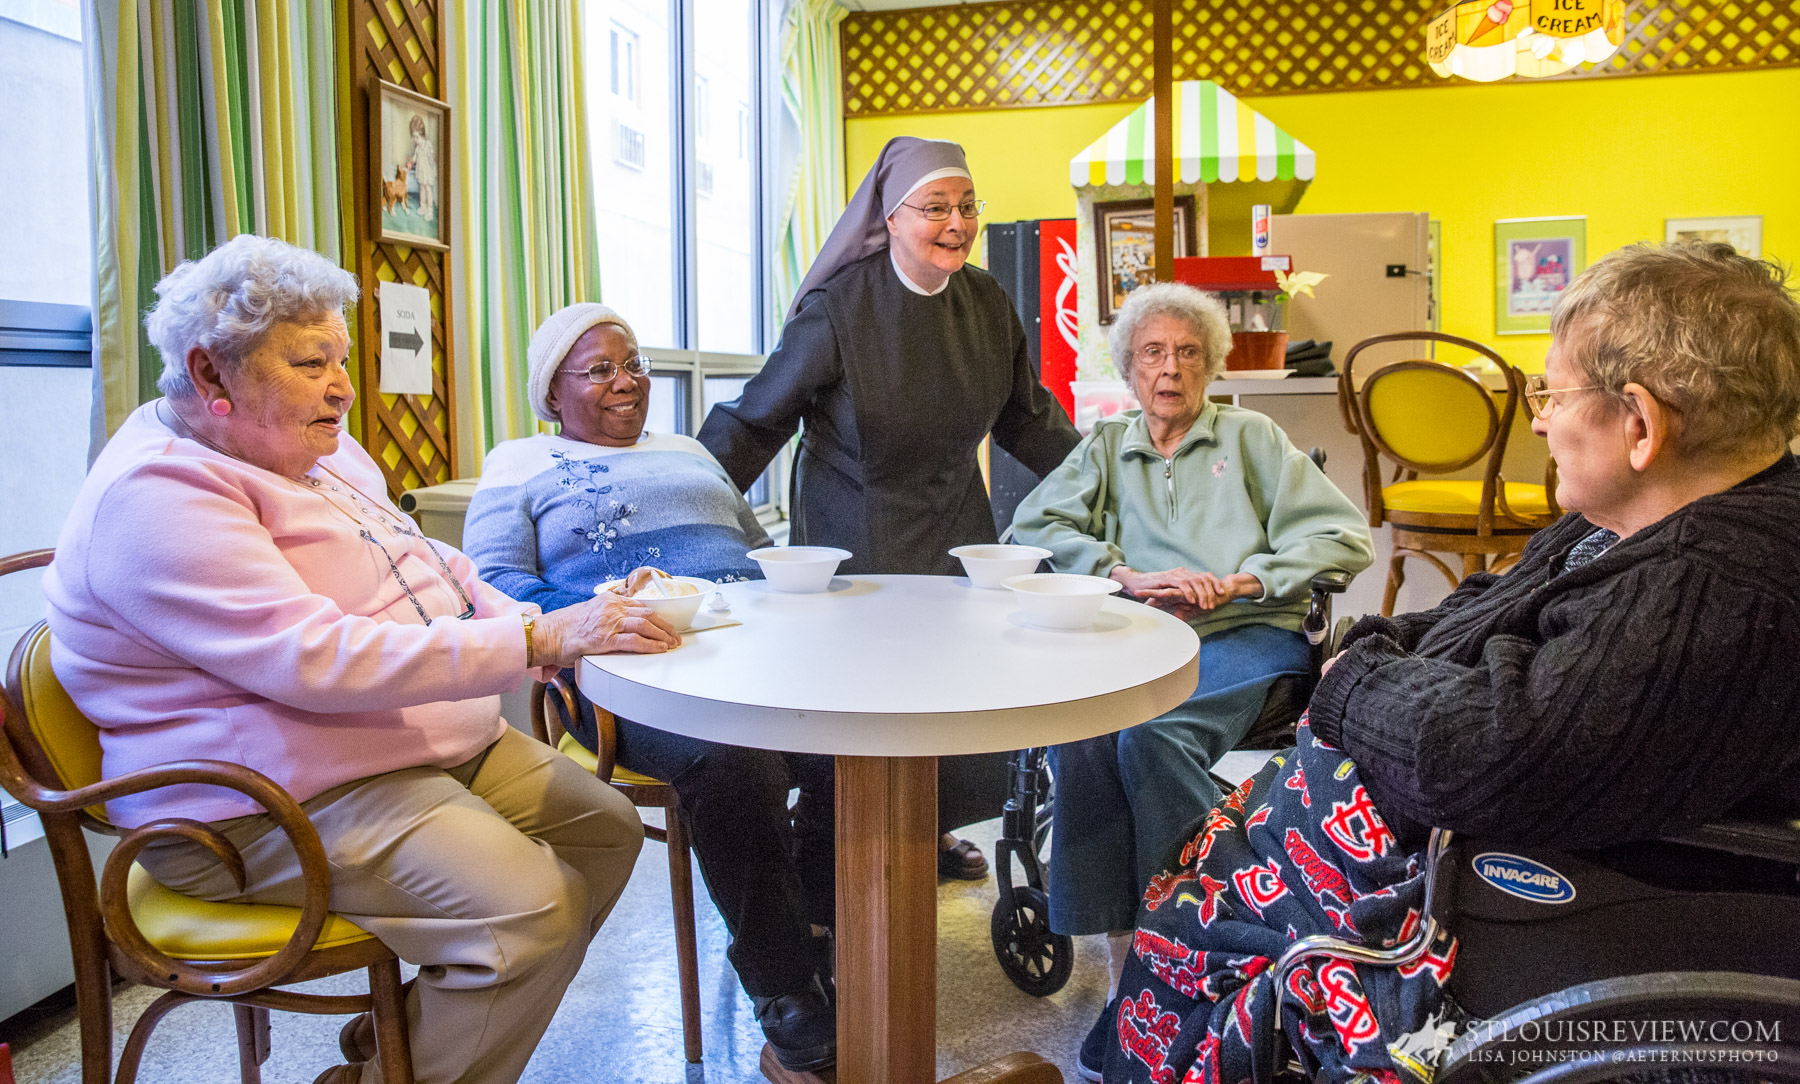 Sister Joseph Maureen Hobin, LSP, joked with residents (from left) Mary Hafner, Ester Allen, Mary Louise Doetsch and Maureen Giraffa, after they had snacks of ice cream and popcorn. The Little Sisters of the Poor continue to assist the elderly poor but support is sought for their work, including with winter heating bills.